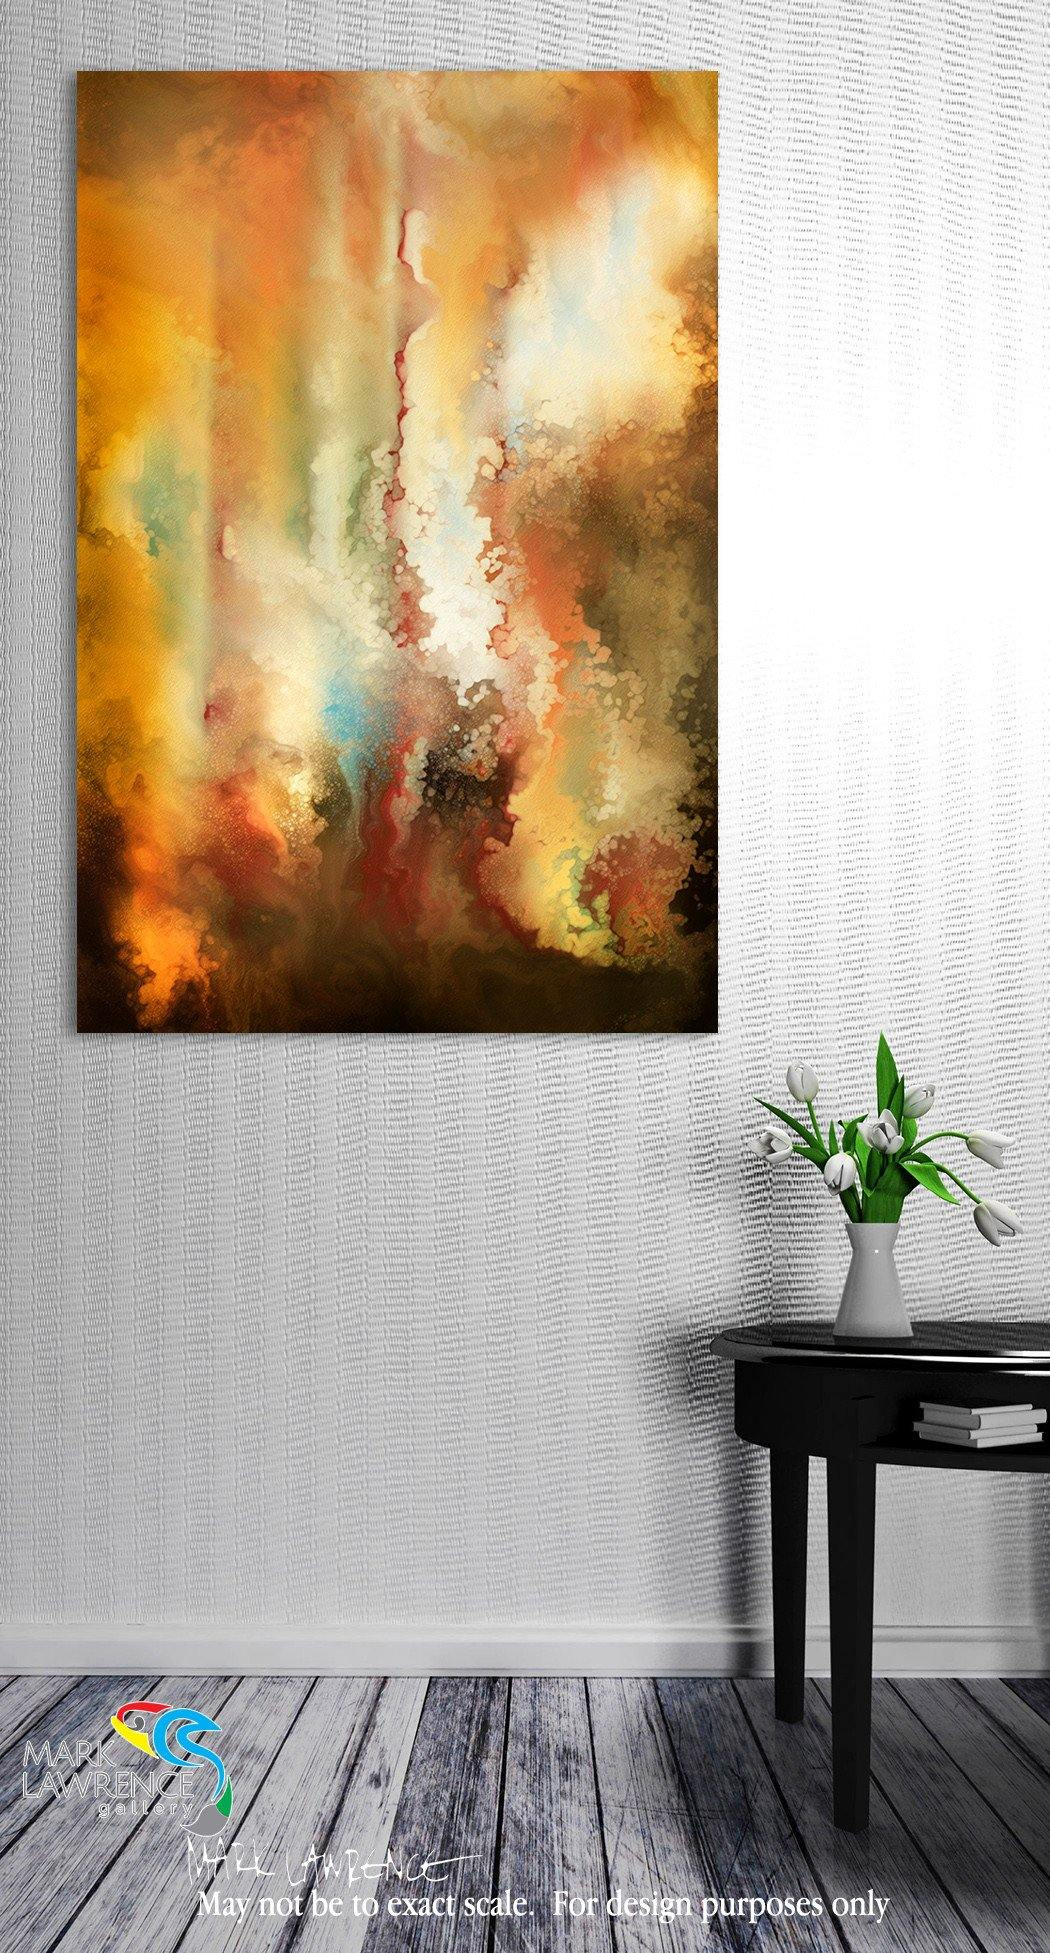 Interior Design Art Inspiration- Colossians 1:13. Delivered From Darkness. Limited Edition Christian themed art. Sacred hand embellished with brush strokes.  Signed/numbered modern abstract art